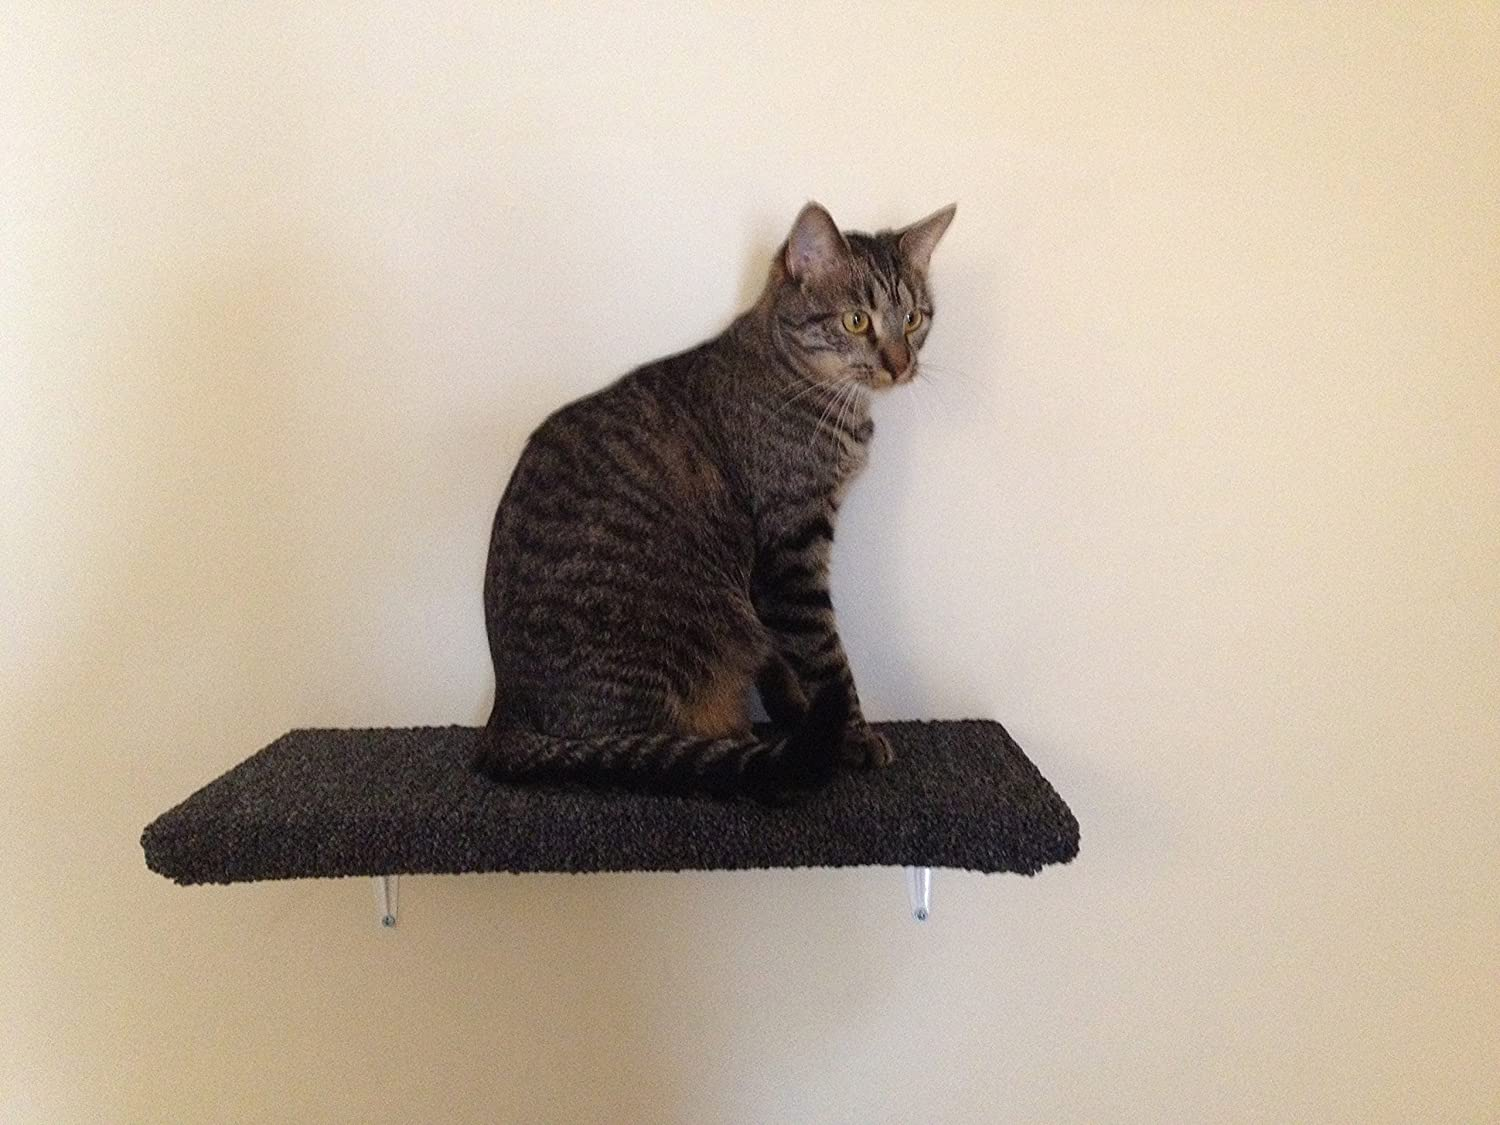 Wall Shelves For Cats To Climb On